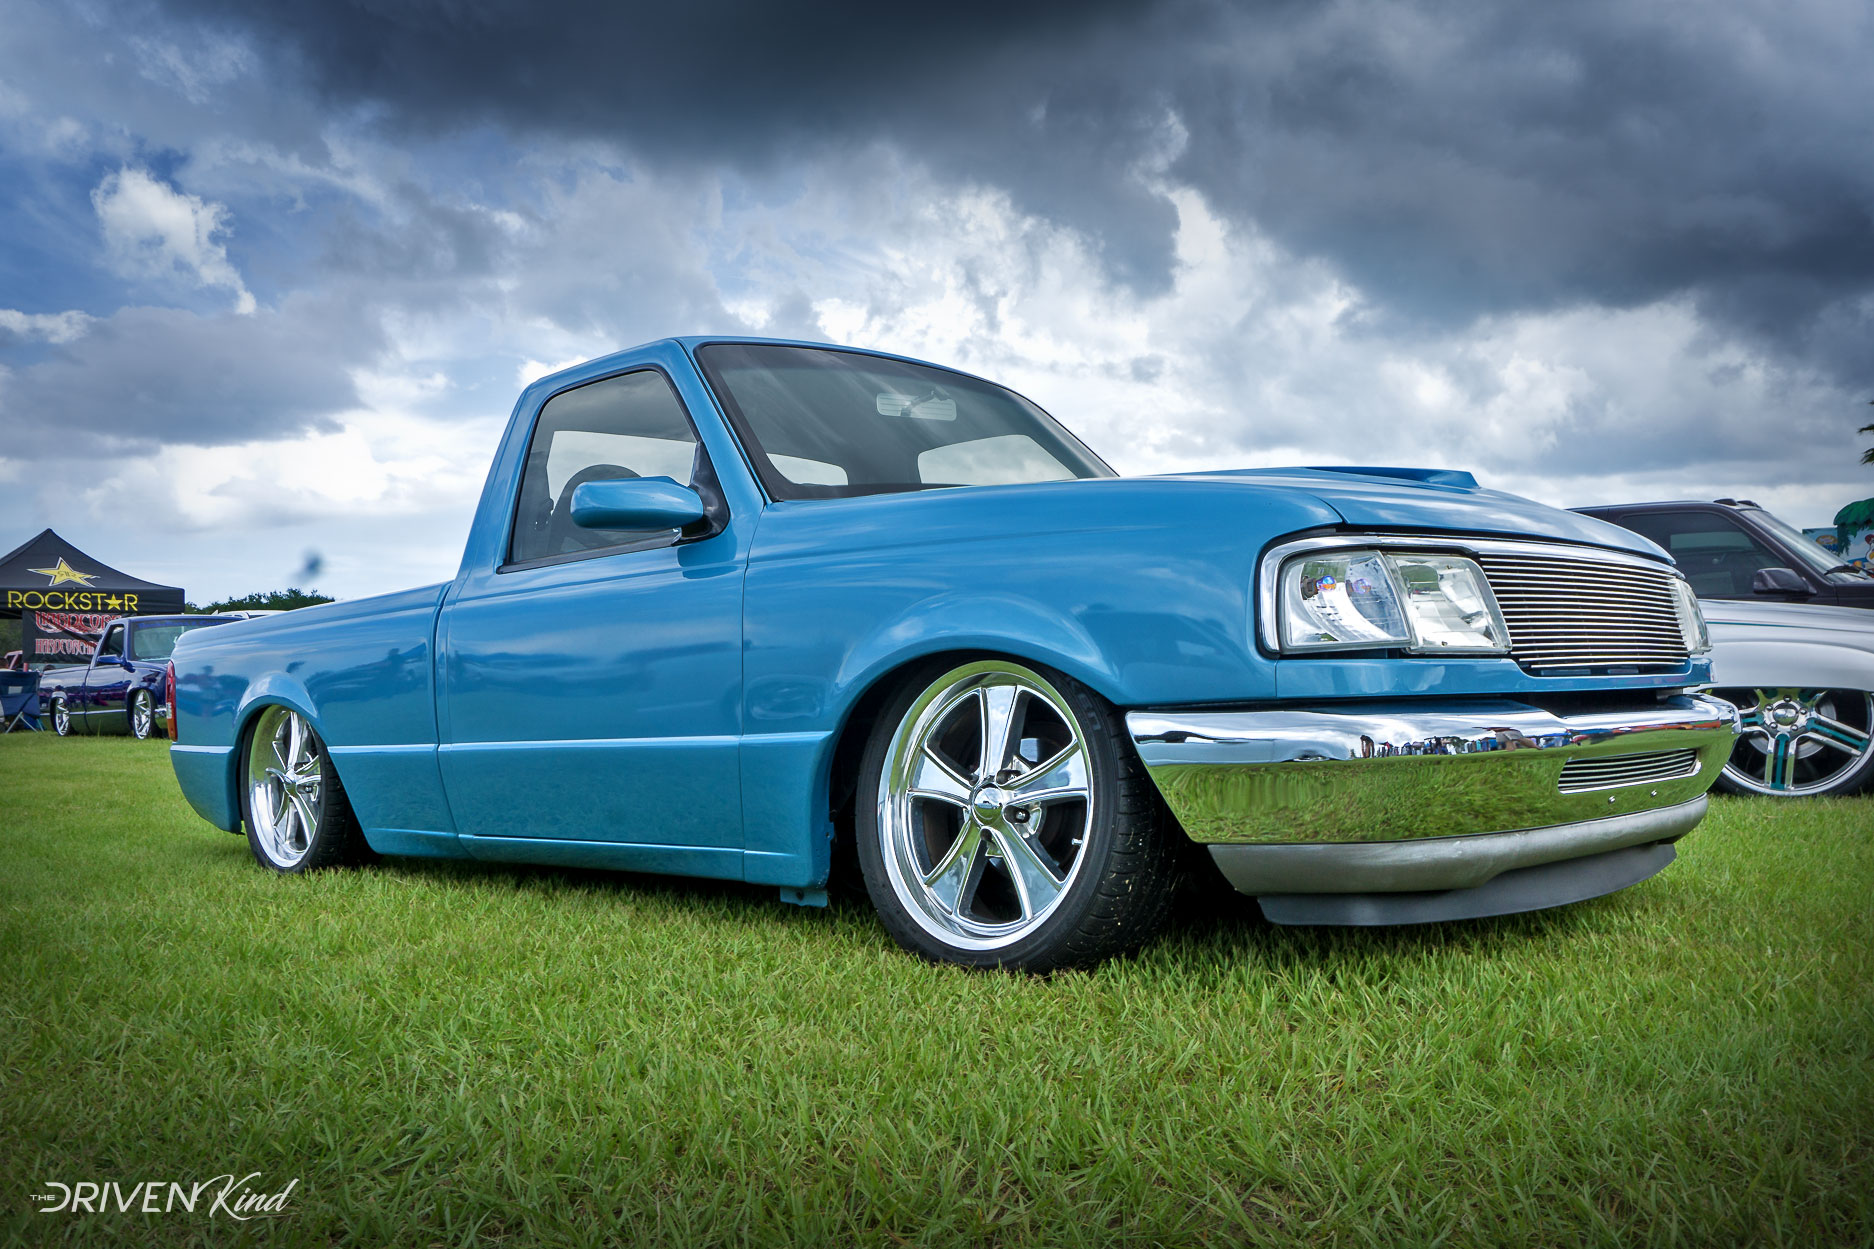 DWN TYME mini truck and lowrider car show Vero Beach FL coverage by The Driven Kind